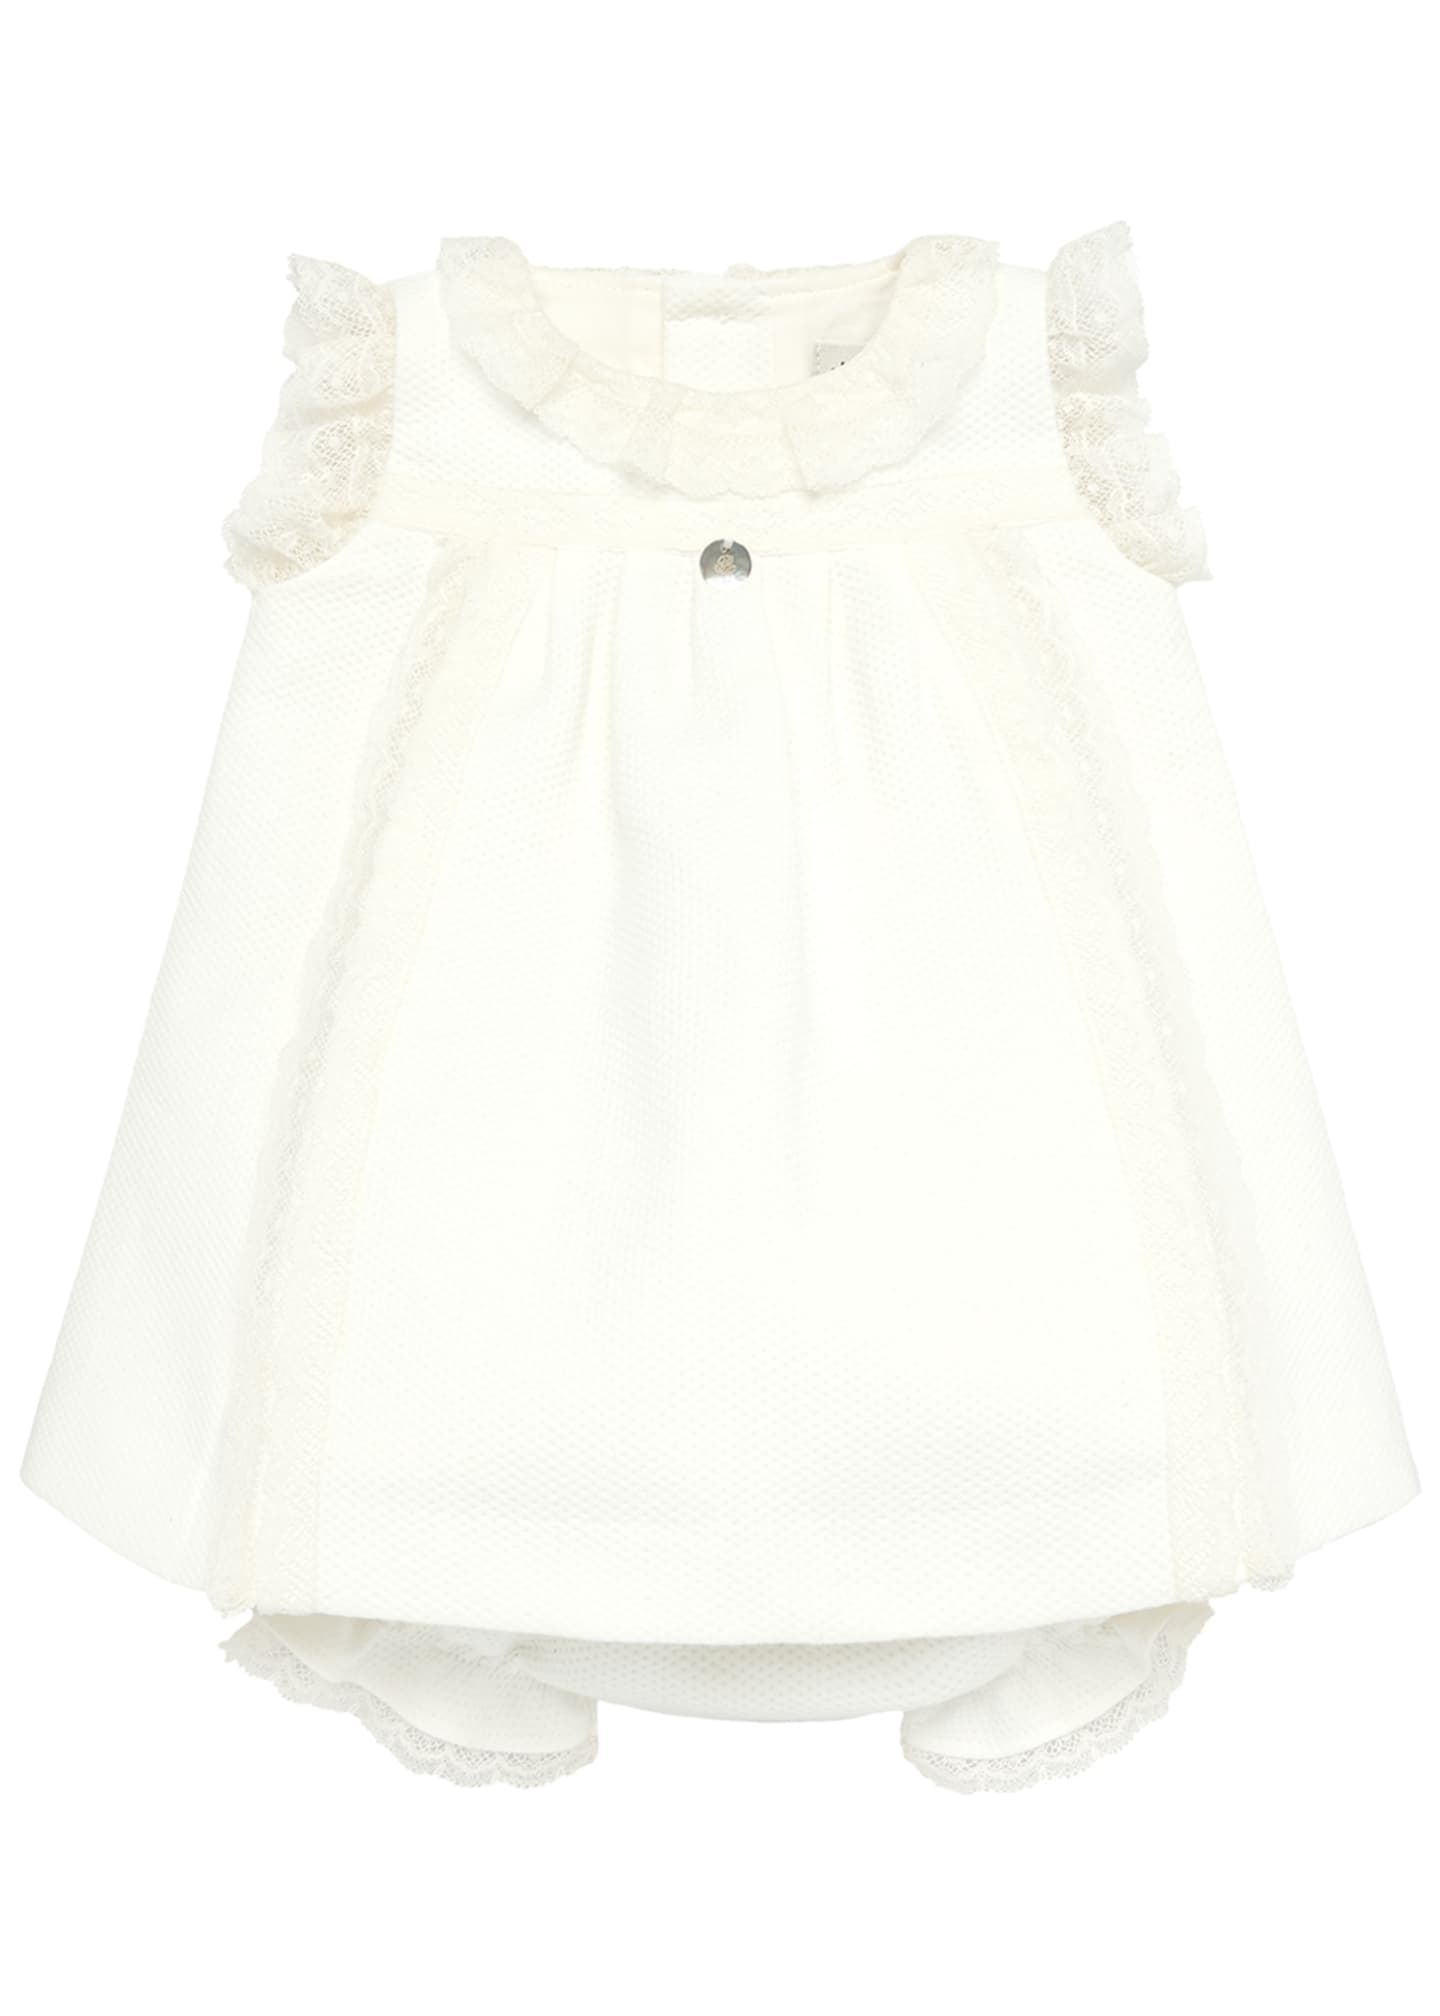 Pili Carrera Lace Trim Sleeveless Dress w/ Bloomers,